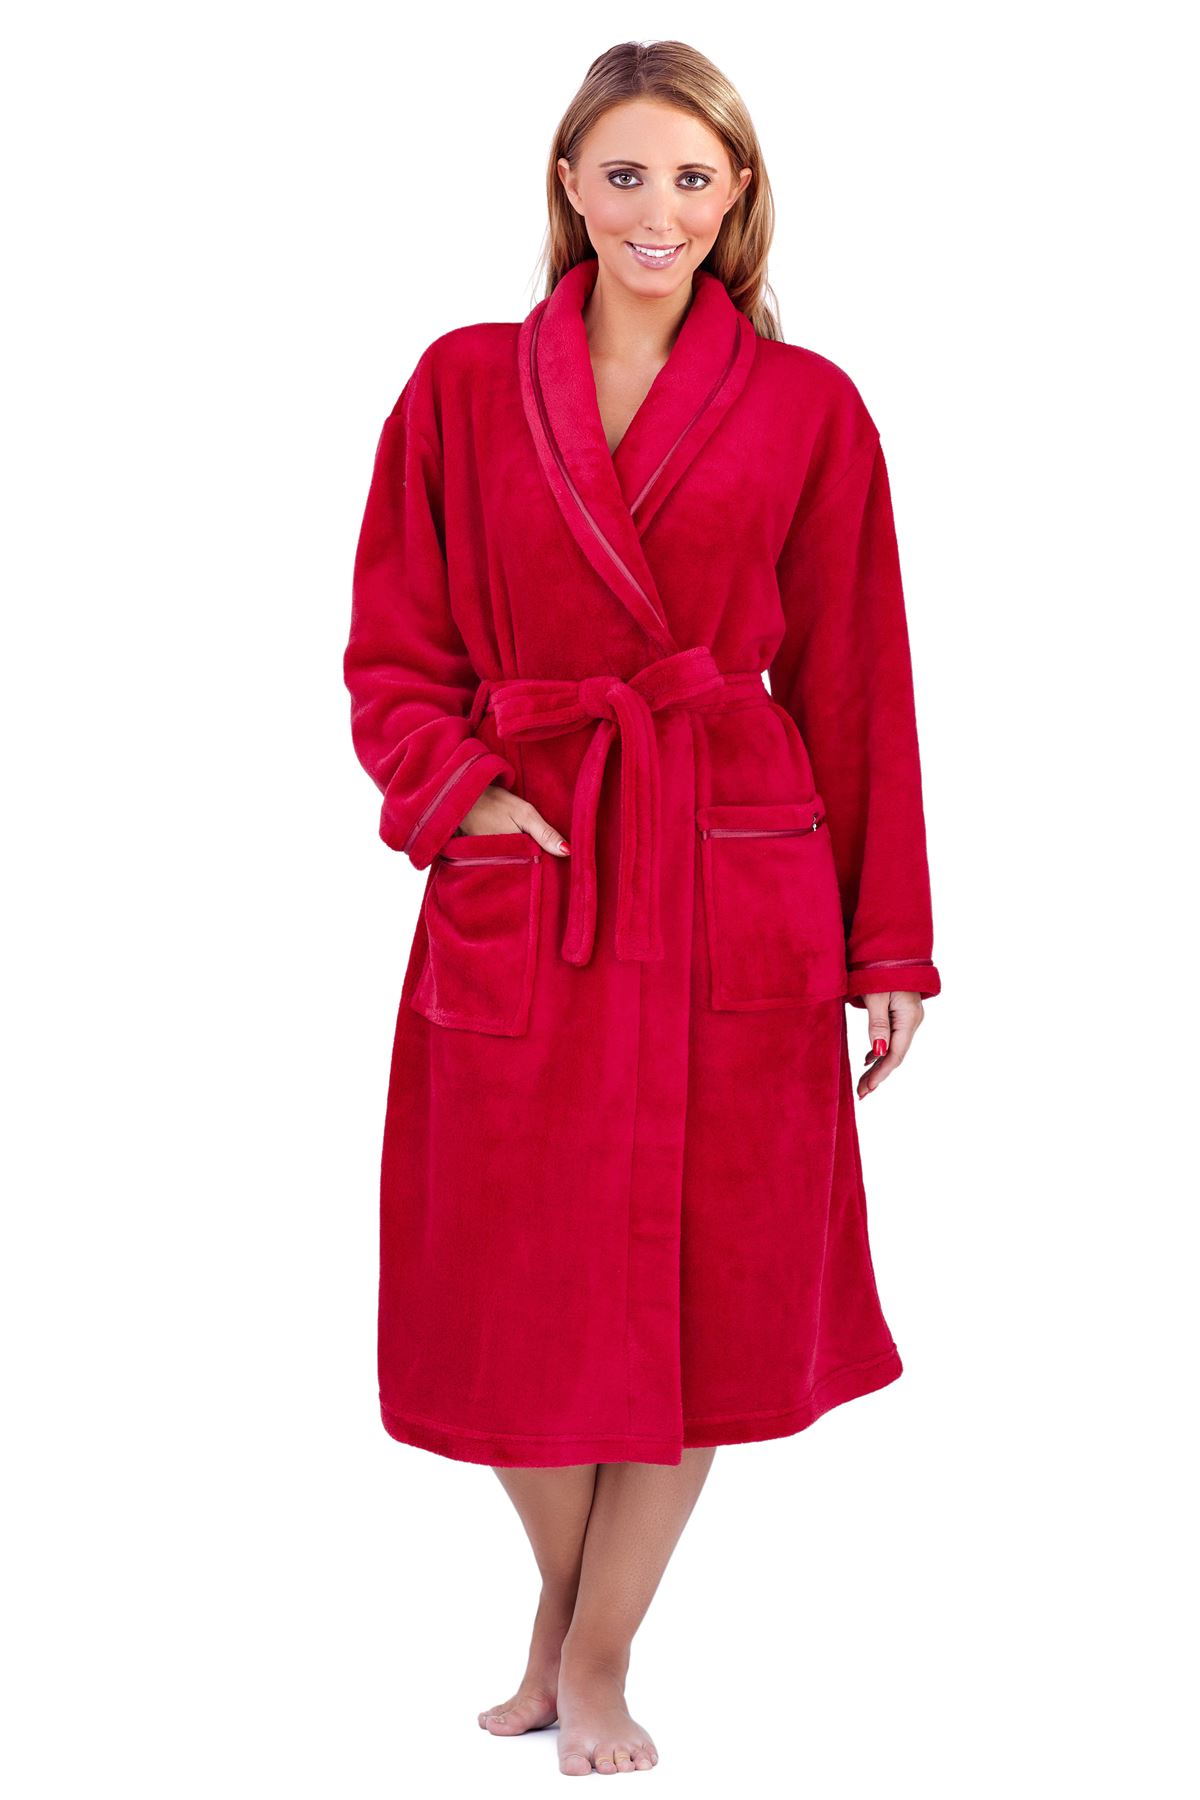 Ladies Terry Towelling % Cotton Hooded. Luxuriously Super Soft Terry Towelling Hooded Dressing Gown with pockets & Belt. Dressing Gown Bath Robe Wrap. Pink White Lilac.